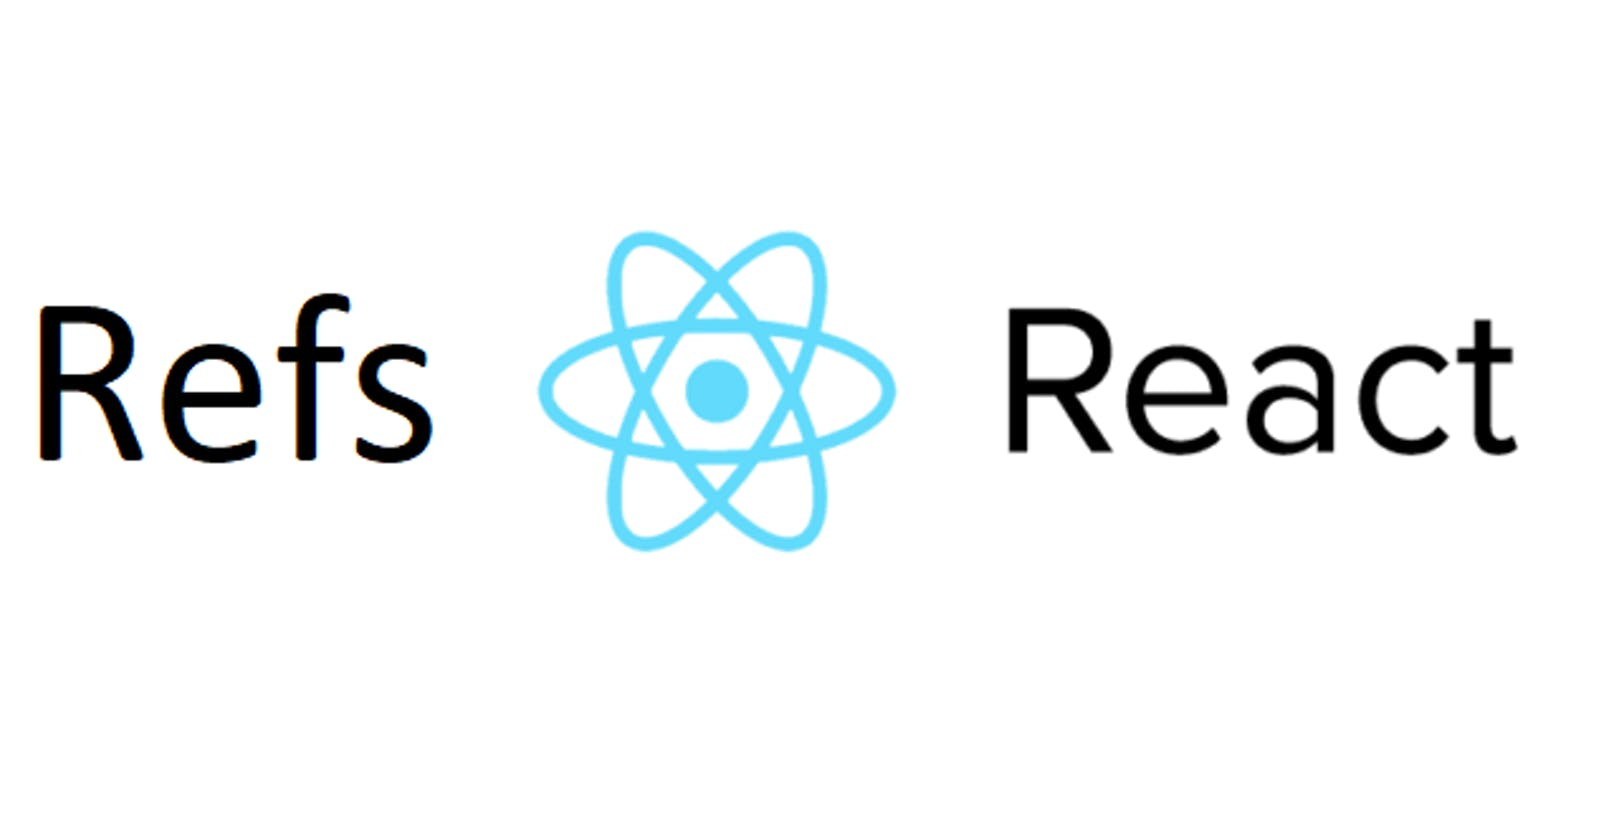 Different ways to create Refs in React